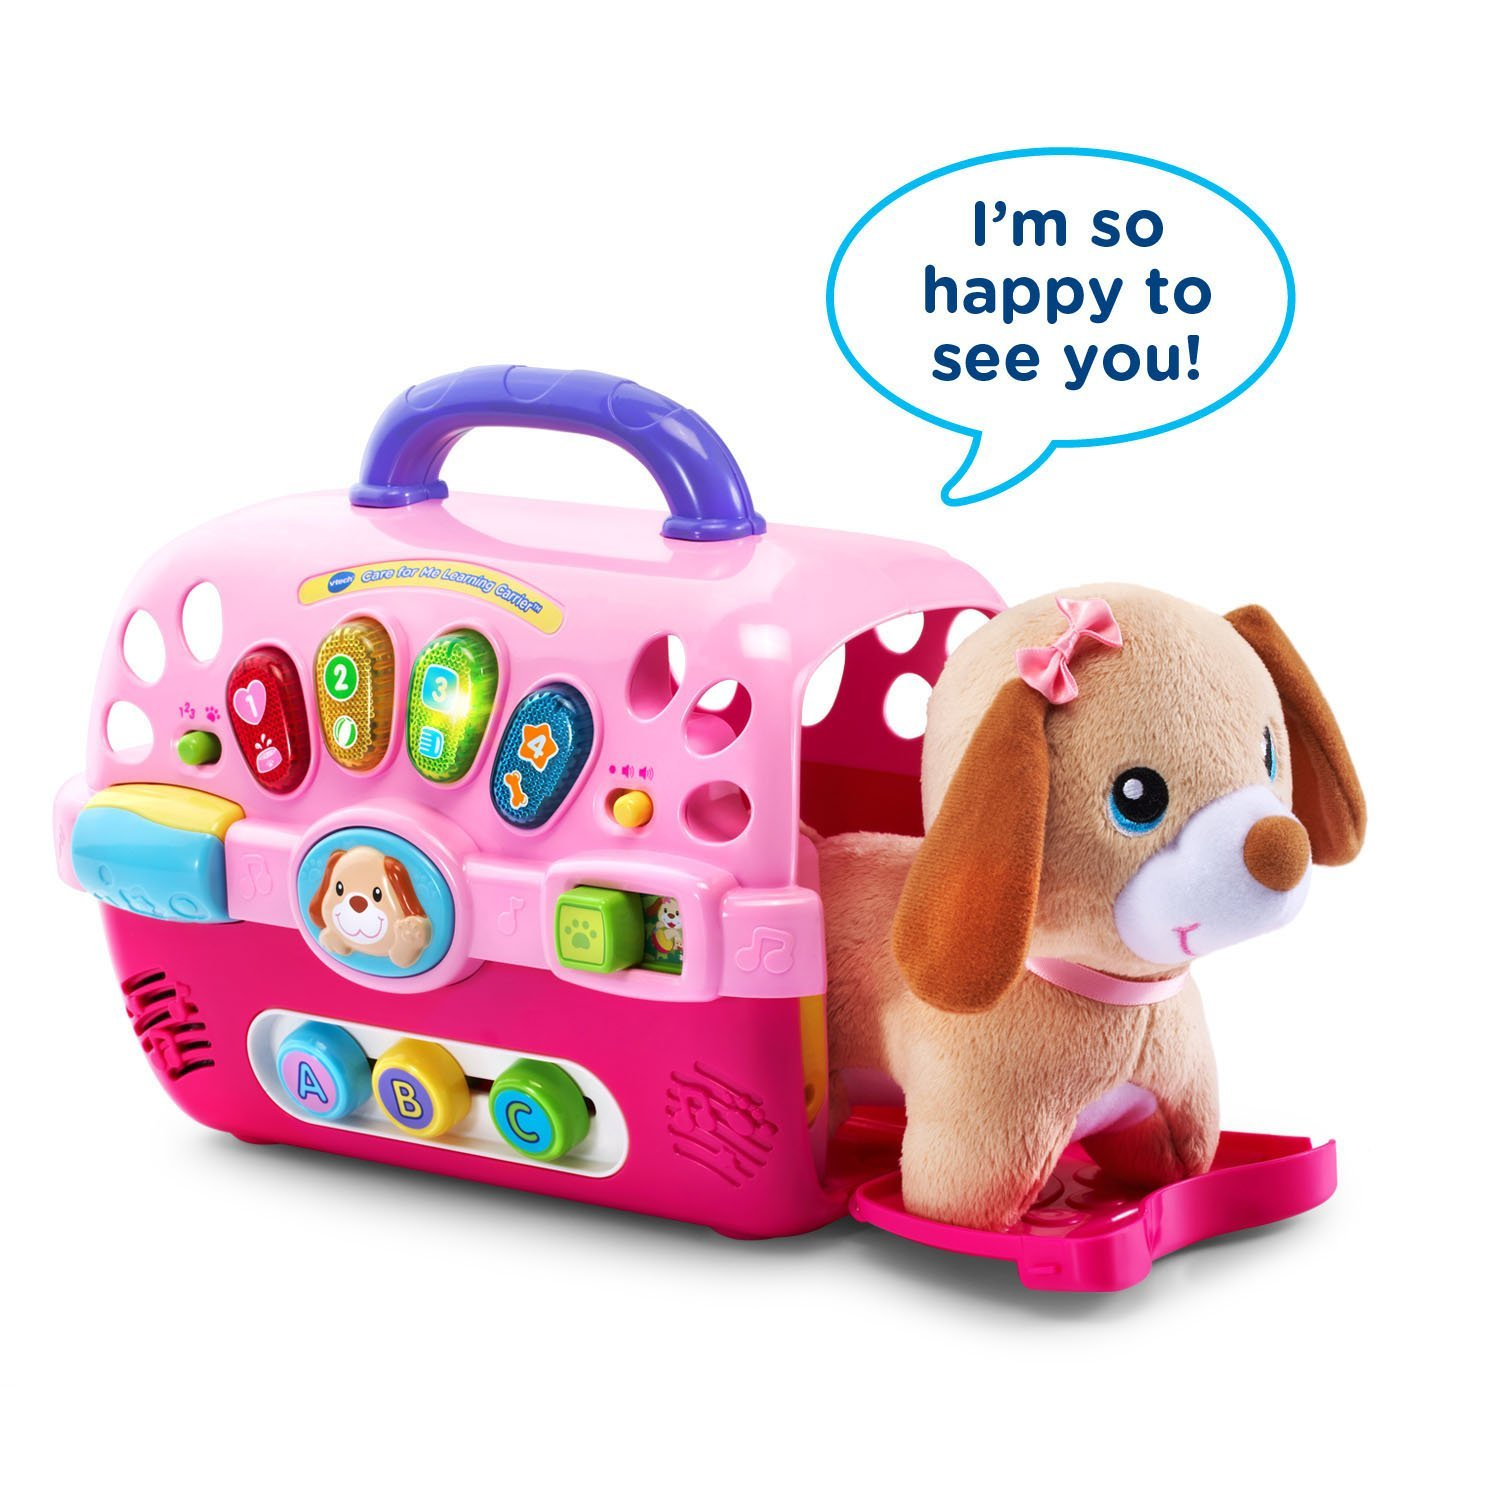 Amazon VTech Care for Me Learning Carrier Toy Toys & Games